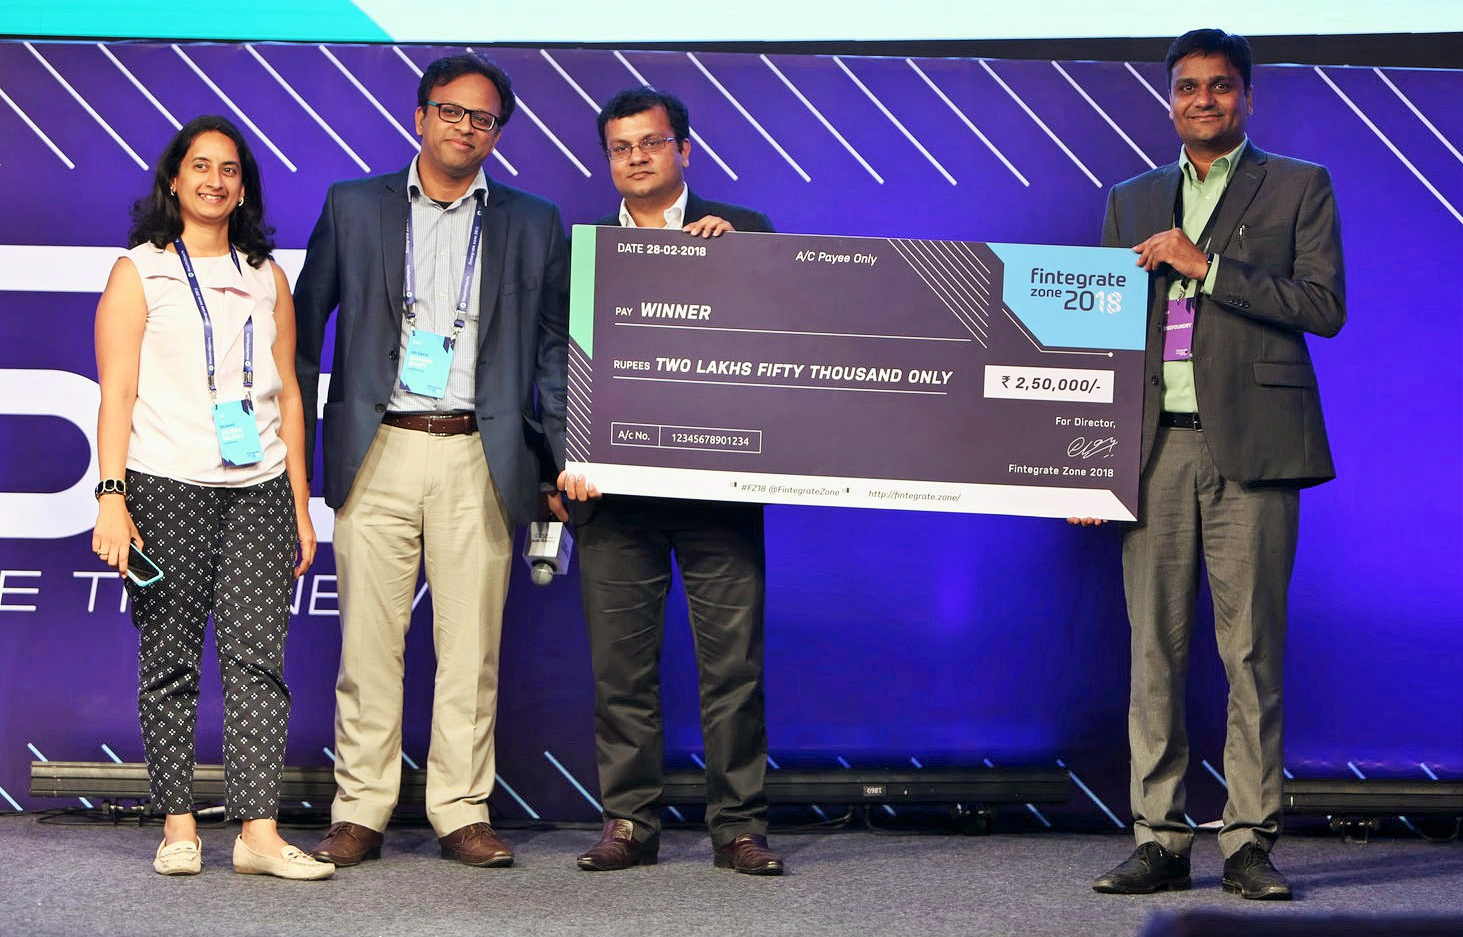 LendFoundry awarded as the No. 1 FinTech Startup at Fintegrate Zone 2018